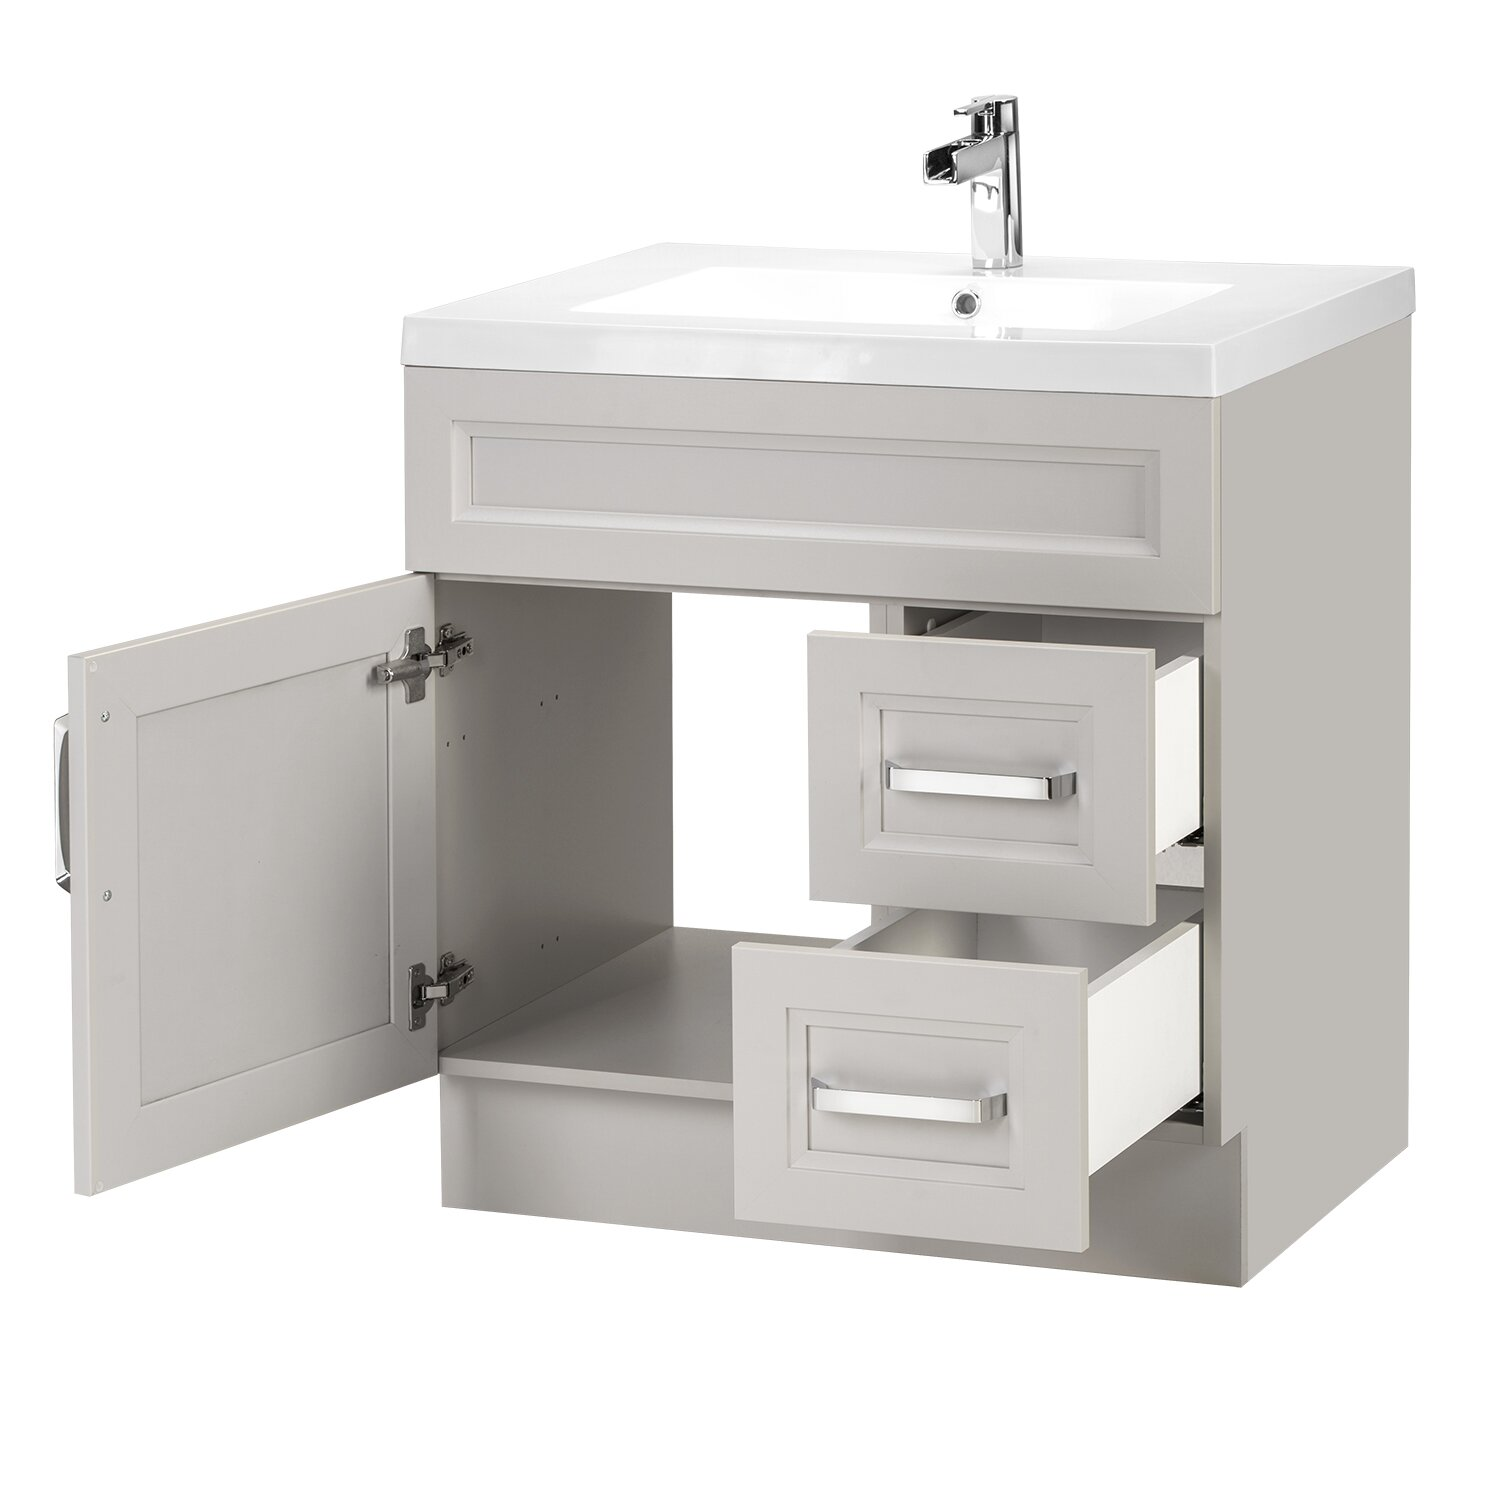 kitchen fv awaits room cutler bath and new urban a collection ideas with tops vanities